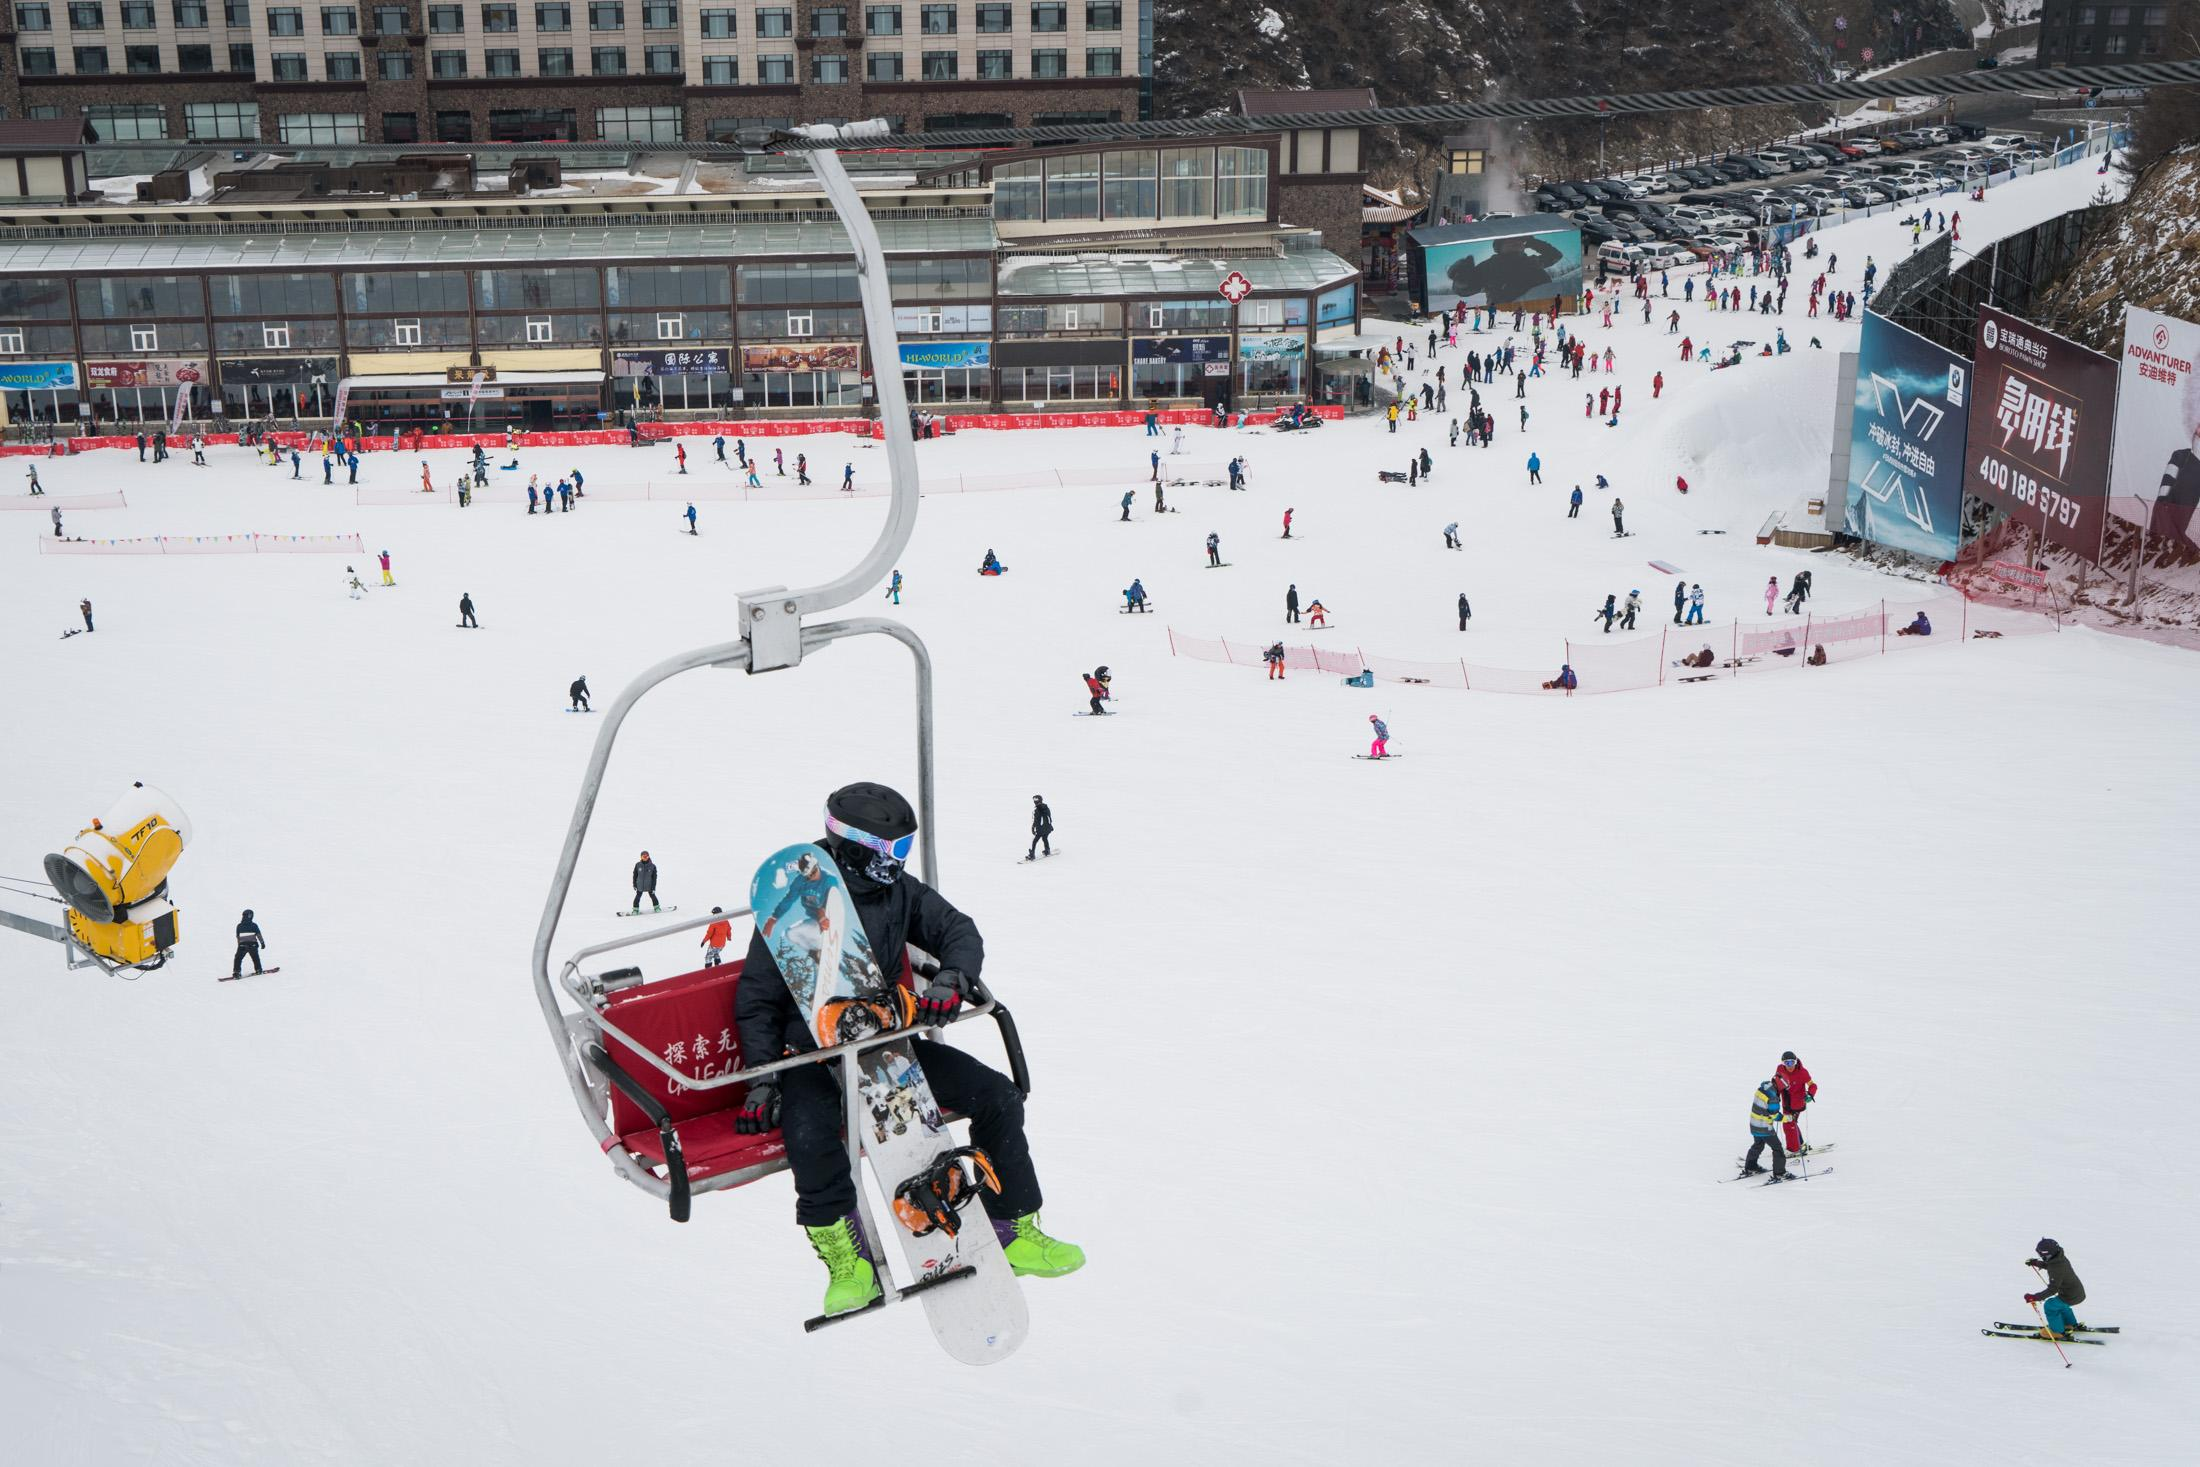 A snowboarder sits in a chairlift looking down at the slope in Wanlong Ski Resort in Chongli, China, January, 2018. Recreational ski and ski resorts started to develop in China around 2000. The number of ski resorts visits has increased dramatically in the past decade in China, from 5 million visits in 2008 to 19.7 million visits in 2018, according to China Ski Industry White Book published last year.